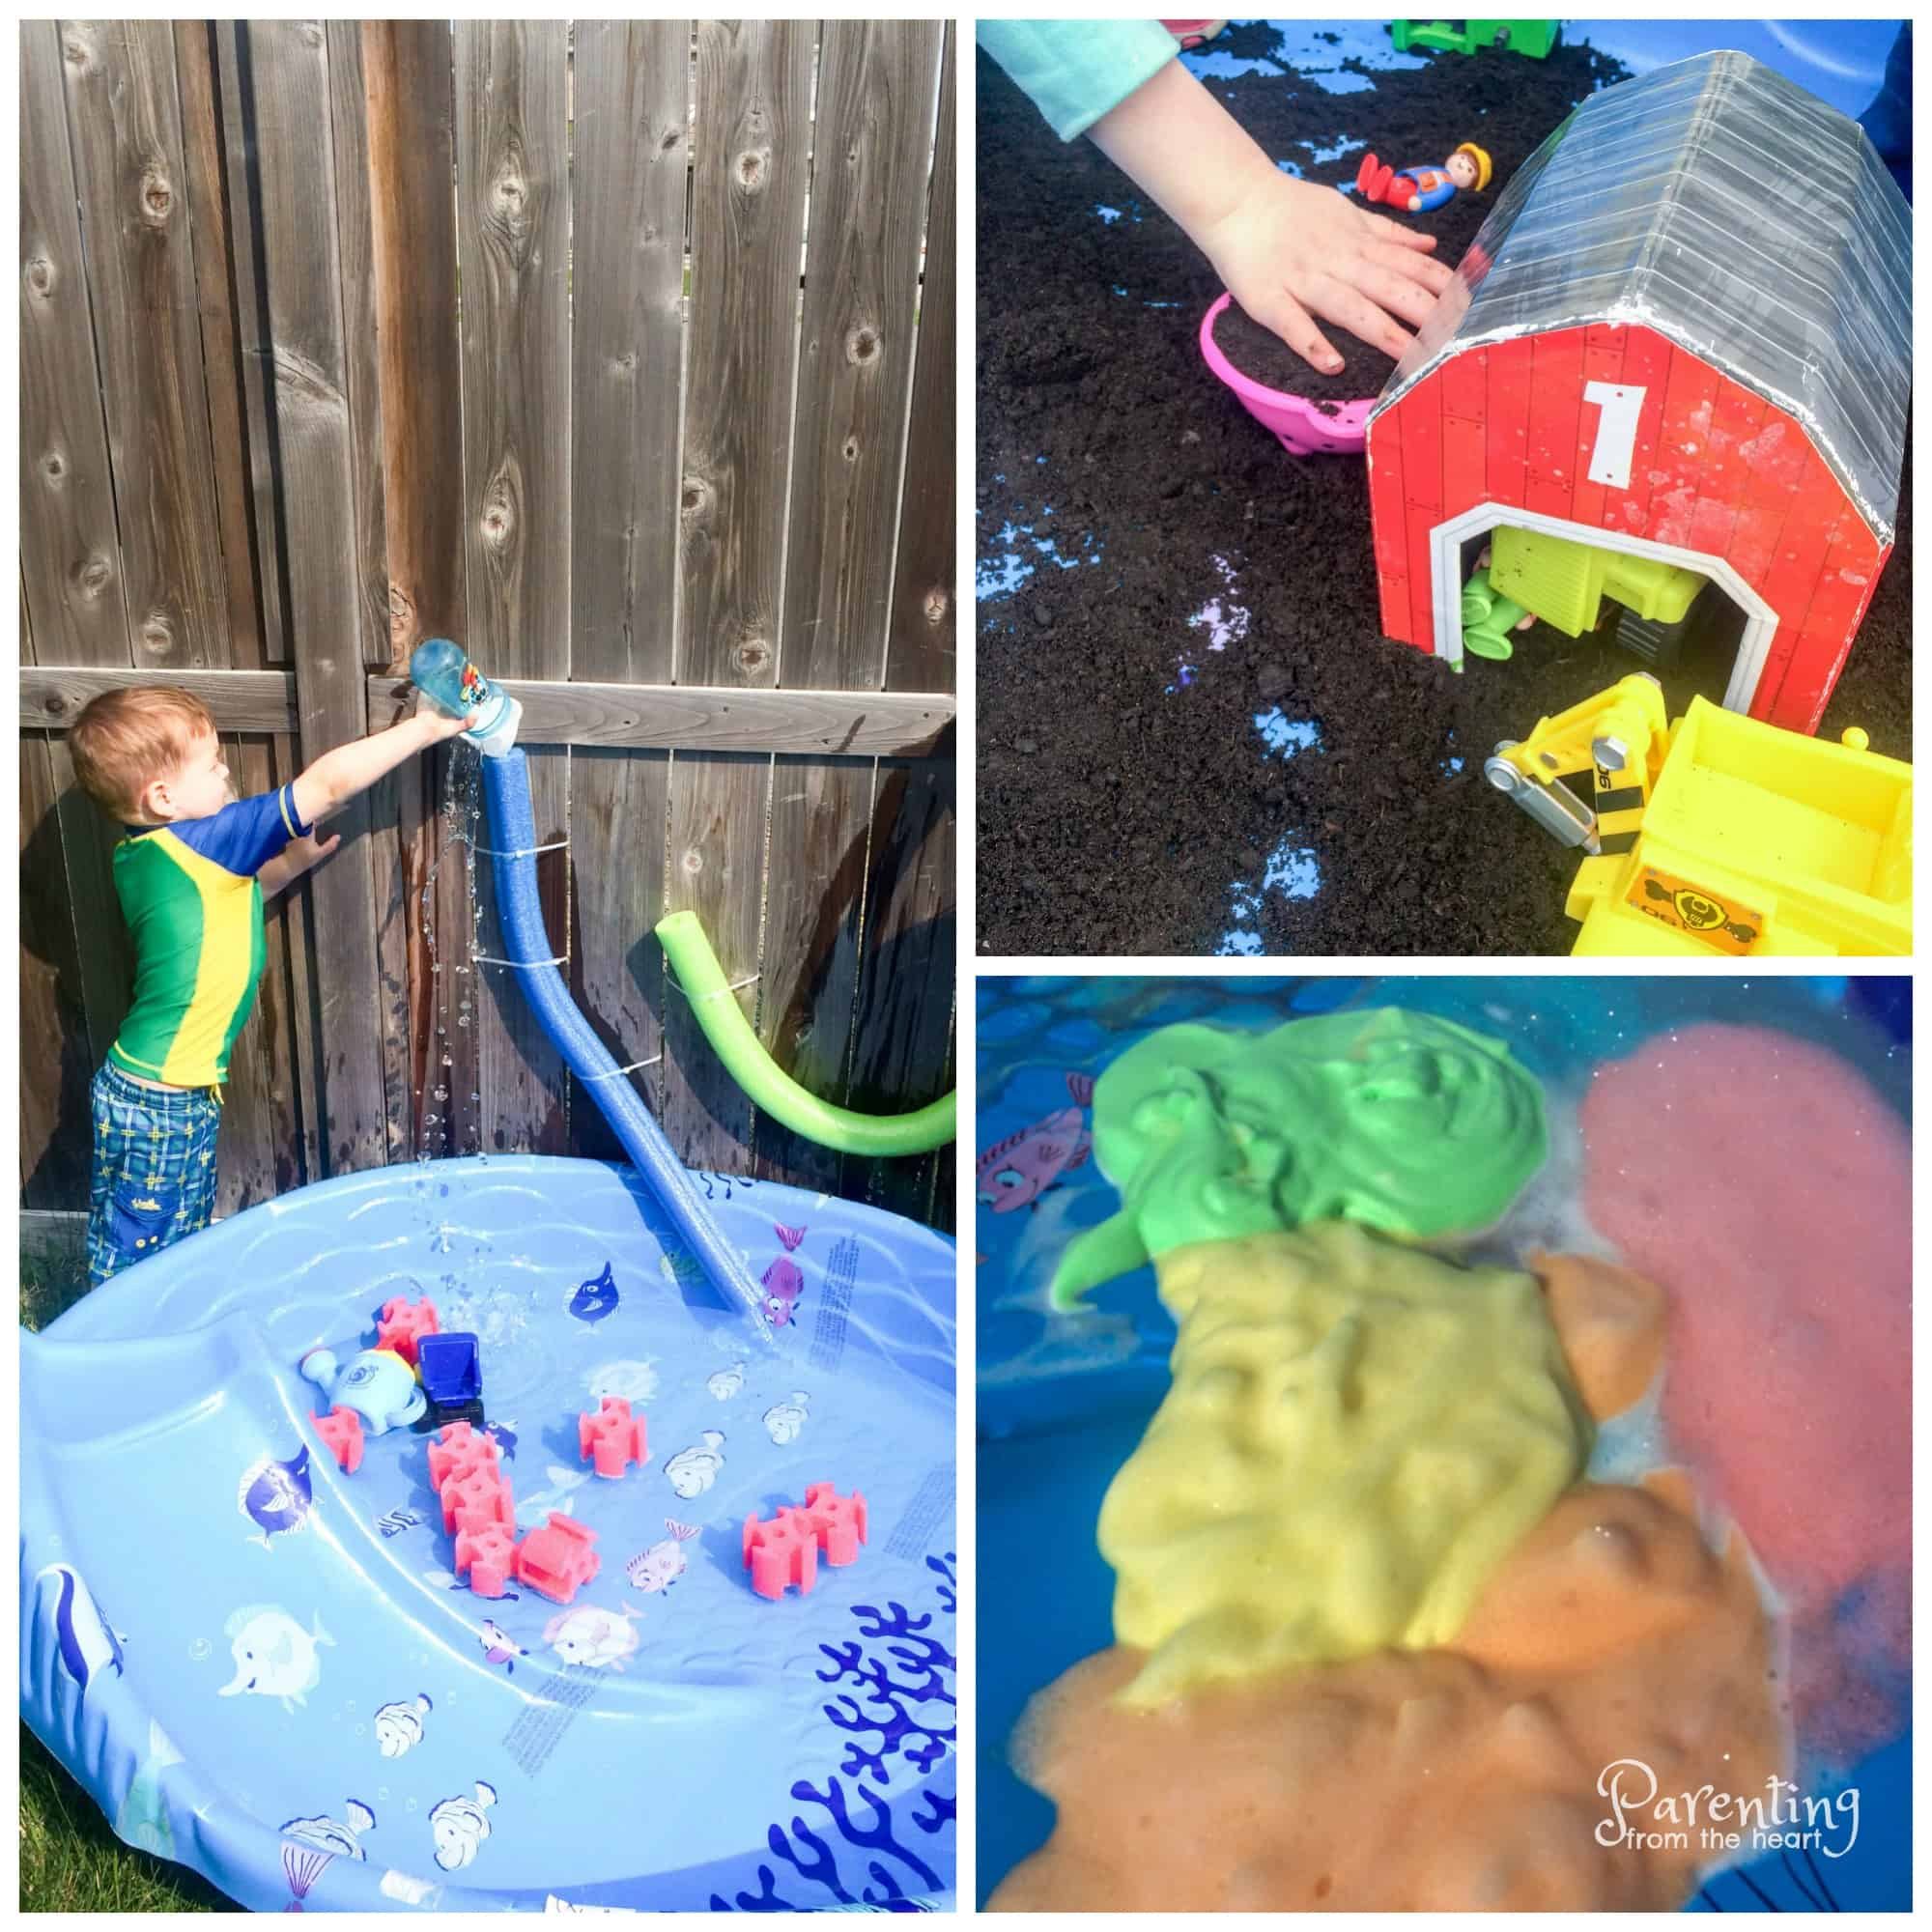 Three sensory play ideas - water and water gun with foam noodles, coloured foam, jello fish in pool Kiddie pools are fun for a brief period of time and then kind of lose their intrigue. Then, parents are left with a massive piece of plastic to store in the backyard or garage. All it takes is a little creativity and some common household items to re-purpose your kiddie pool and make it into a massive sensory bin. It's such a fun way for kids to engage in play-based learning outside.